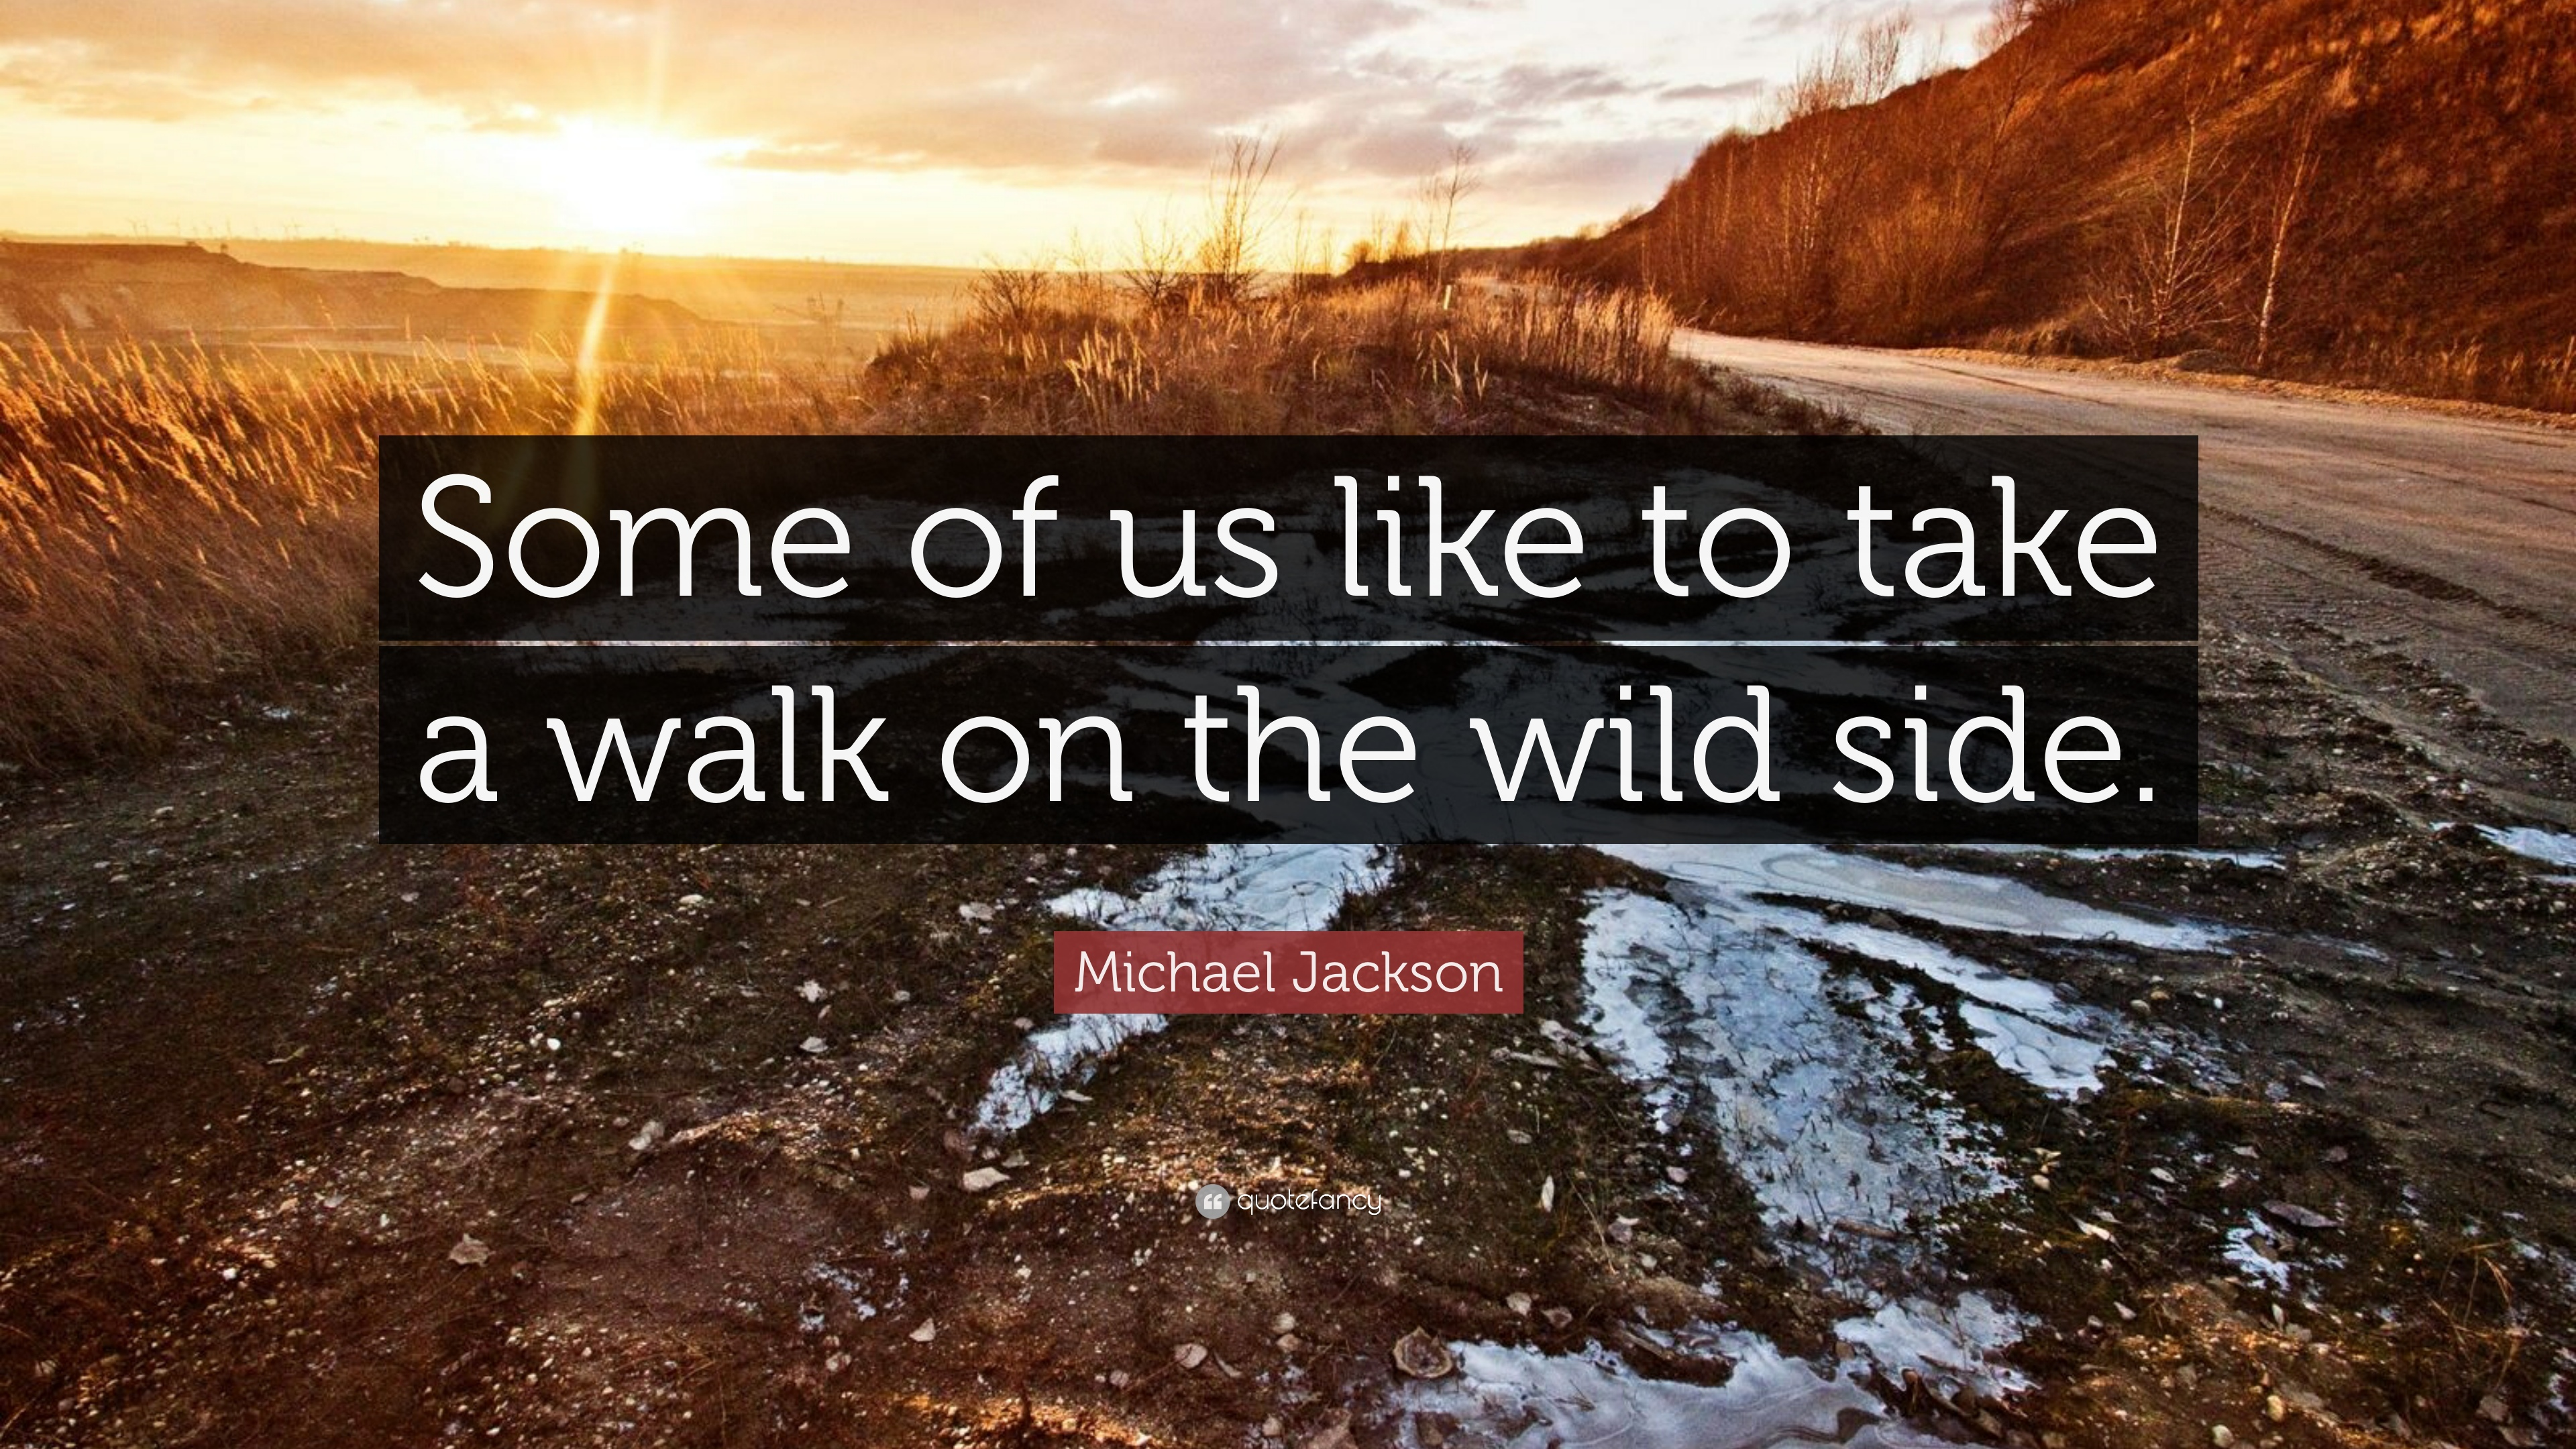 michael jackson quote some of us like to take a walk on the wild side 10 wallpapers. Black Bedroom Furniture Sets. Home Design Ideas